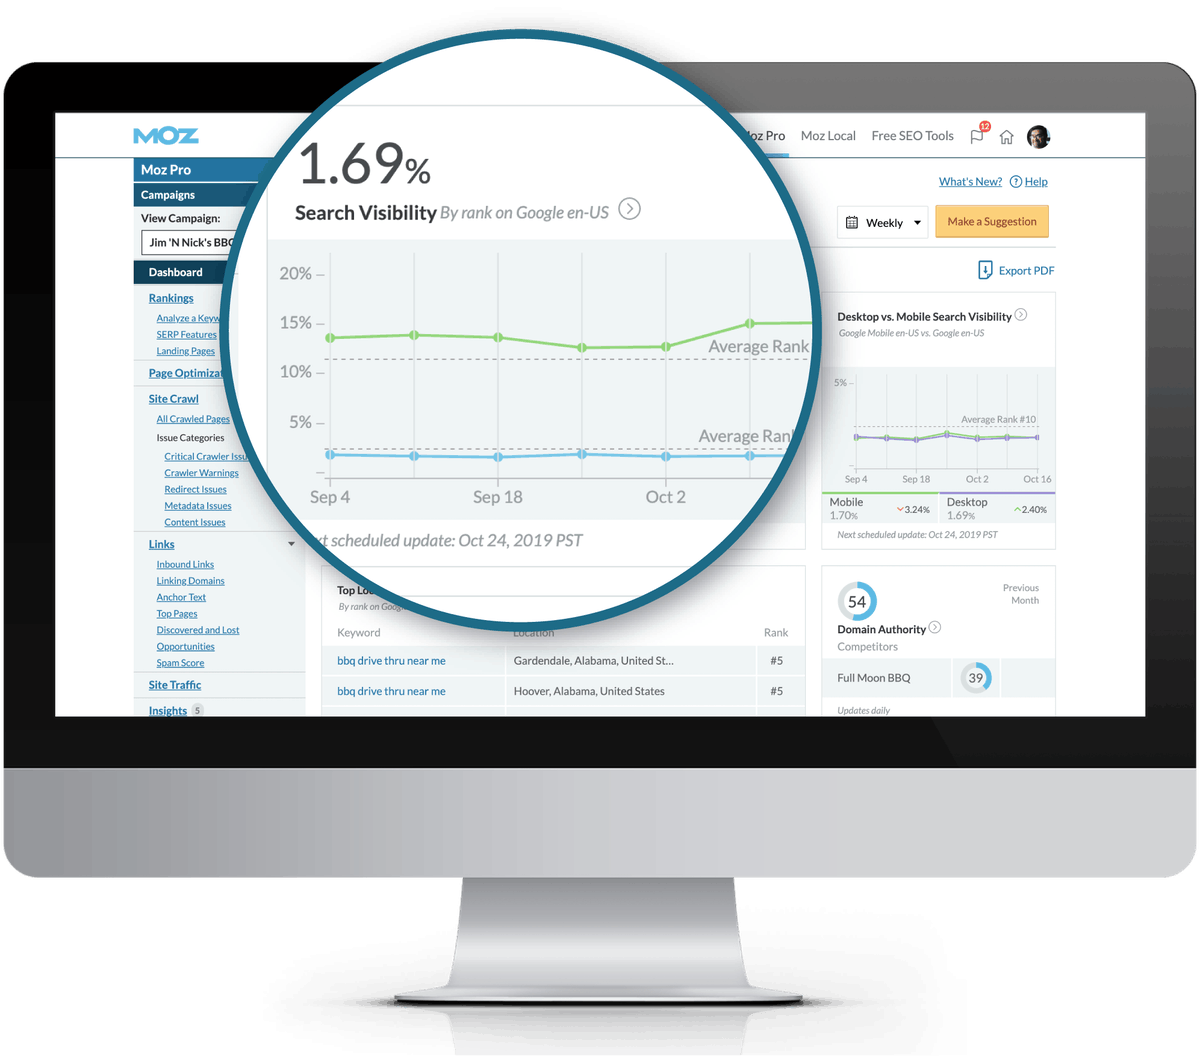 <p>Moz Pro scales SEO efforts and delivers sustained results</p>